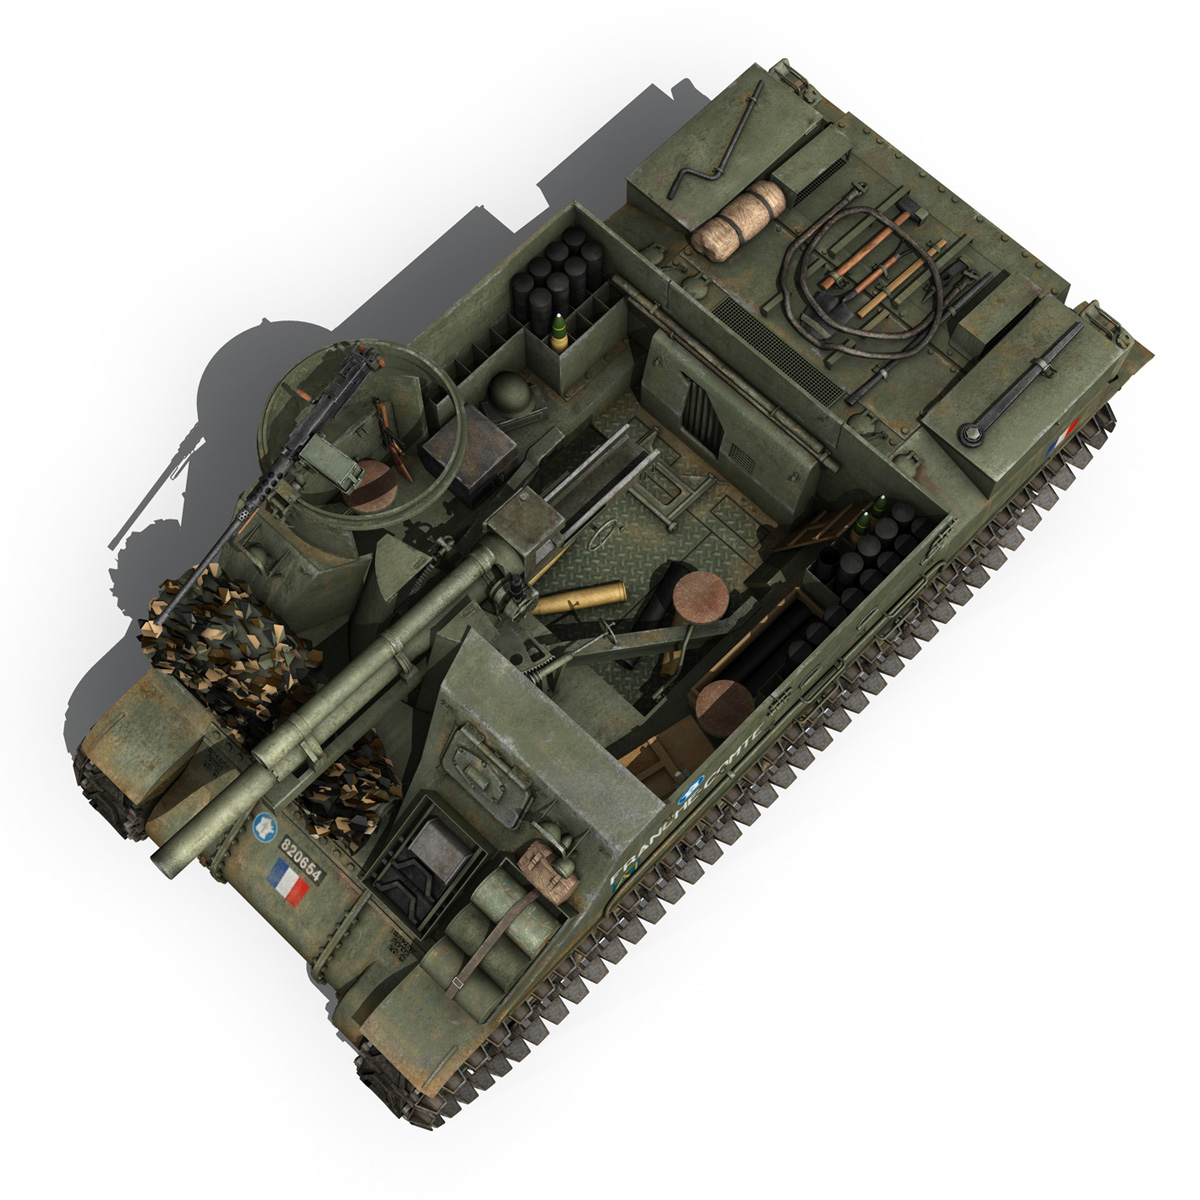 M7 Priest - Franche-Comte 3d model  265865